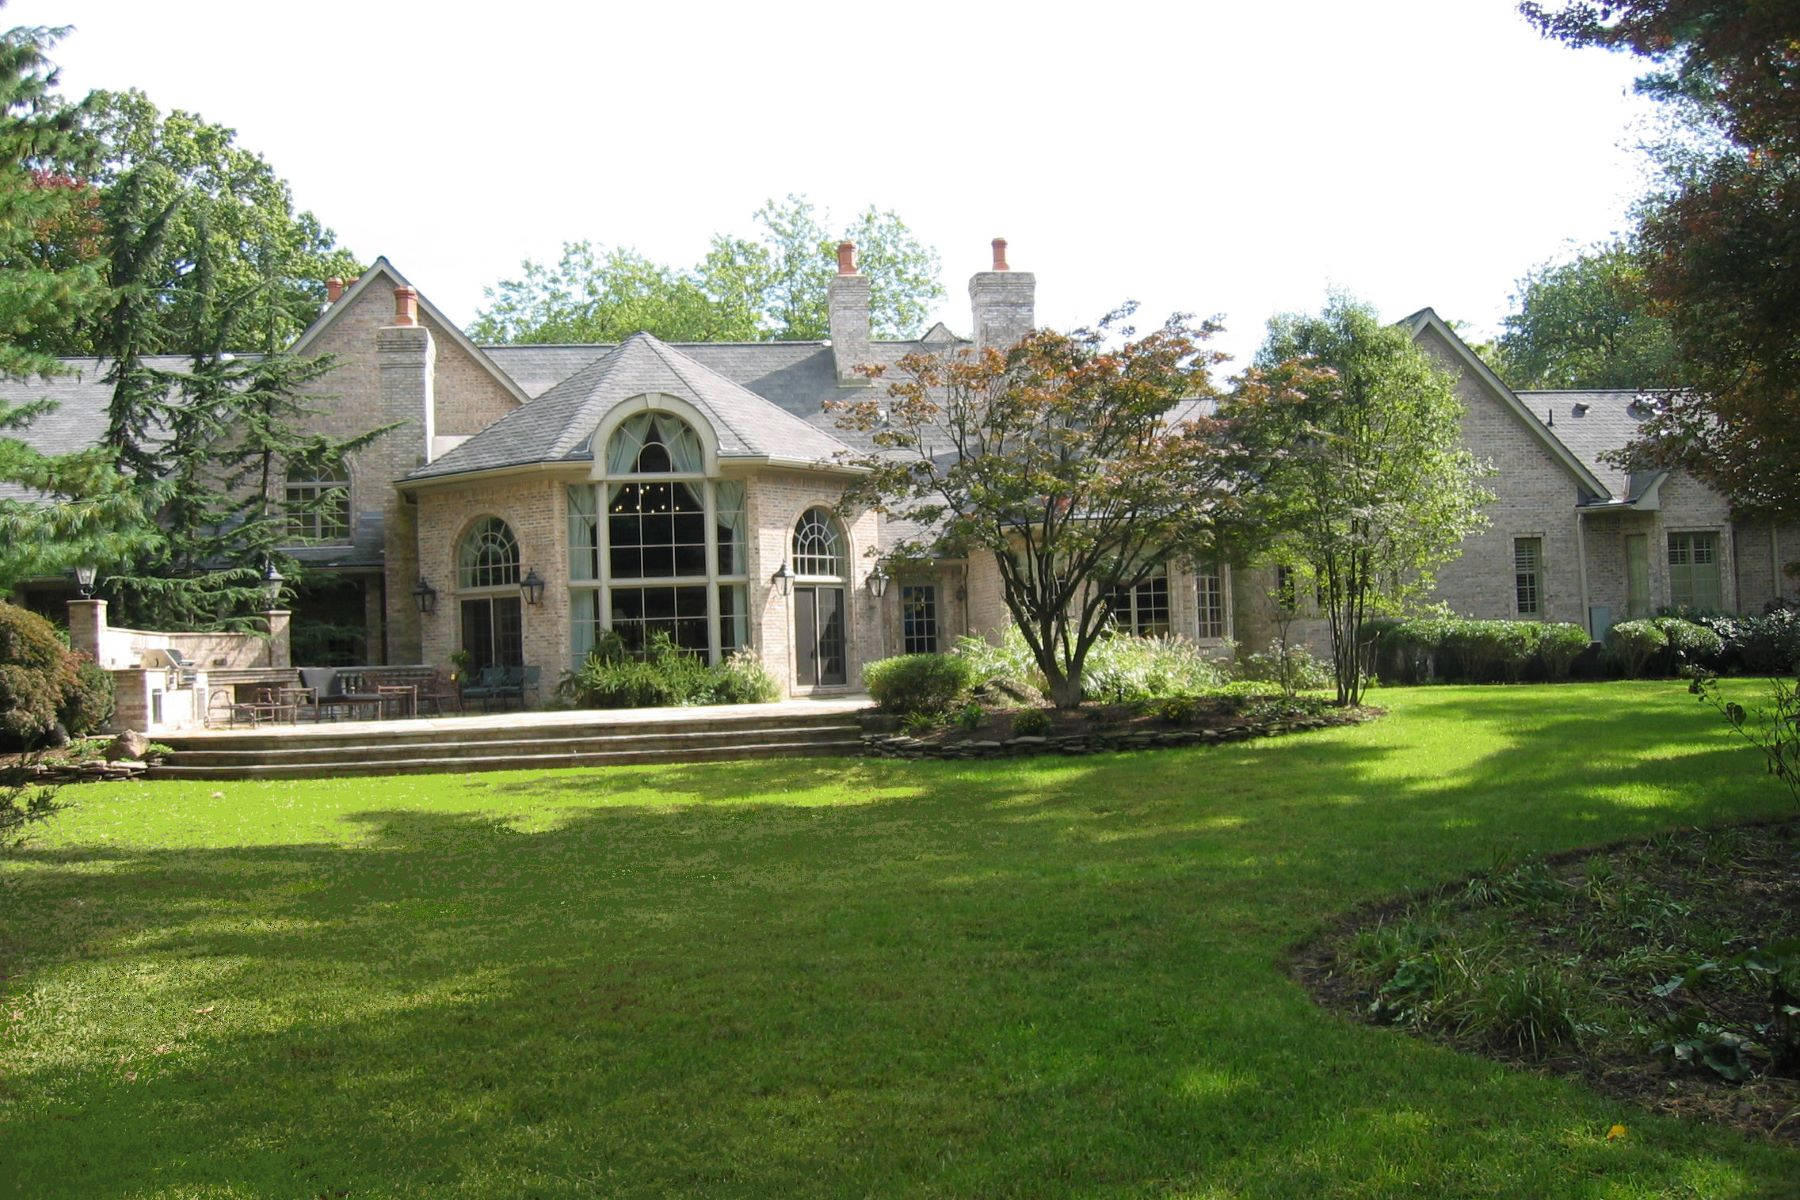 Single Family Home for Sale at Majestic Brick Manor 320 Algonquin Road Franklin Lakes, 07417 United States